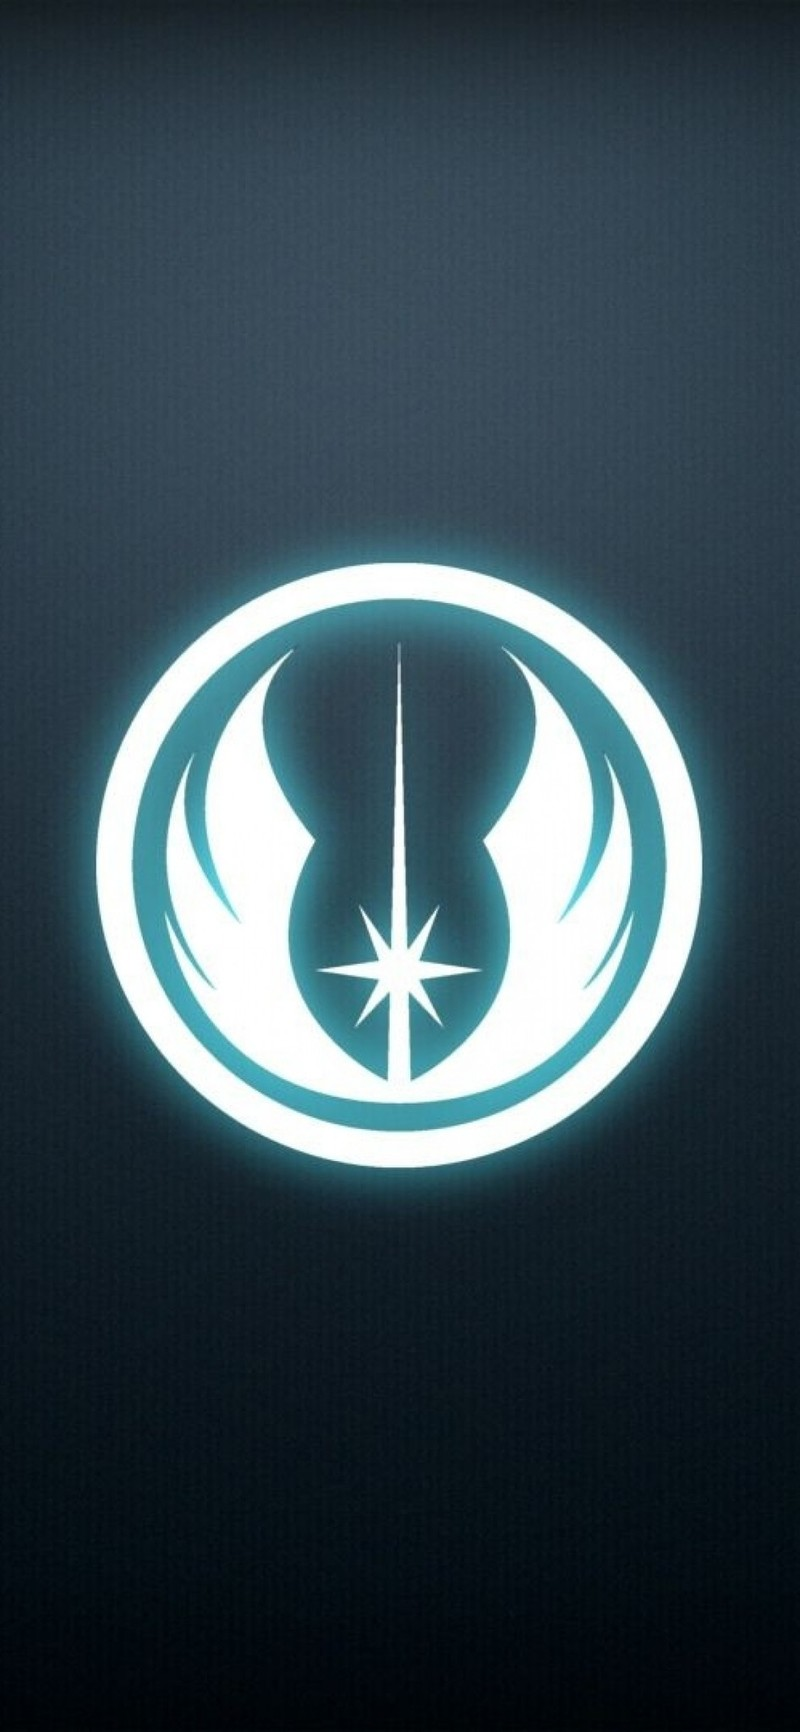 Star Wars Jedi Order Logo Iphone Star Wars Backgrounds 833653 Hd Wallpaper Backgrounds Download